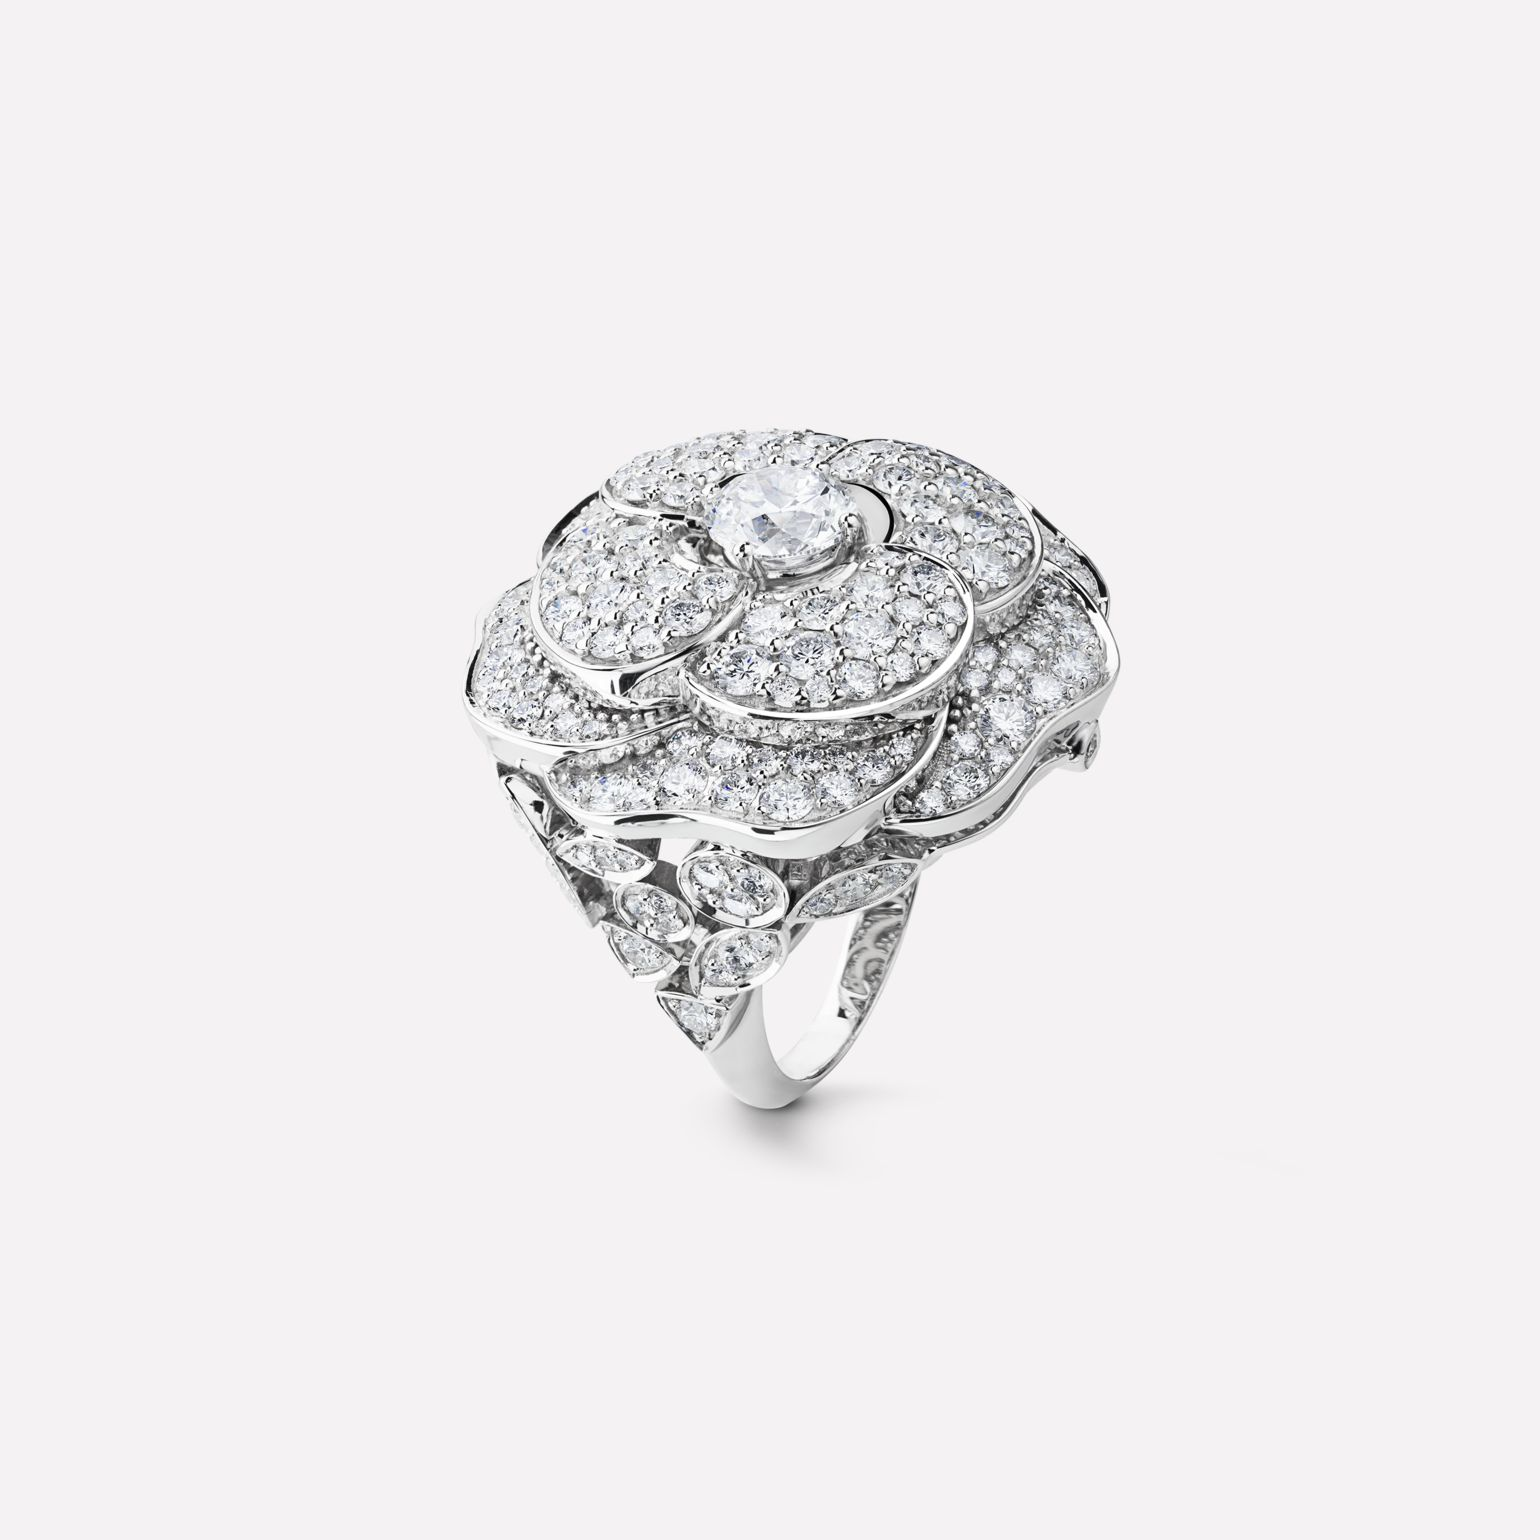 Camélia ring Pétales de Camélia ring, large version, in 18K white gold and diamonds with one center diamond